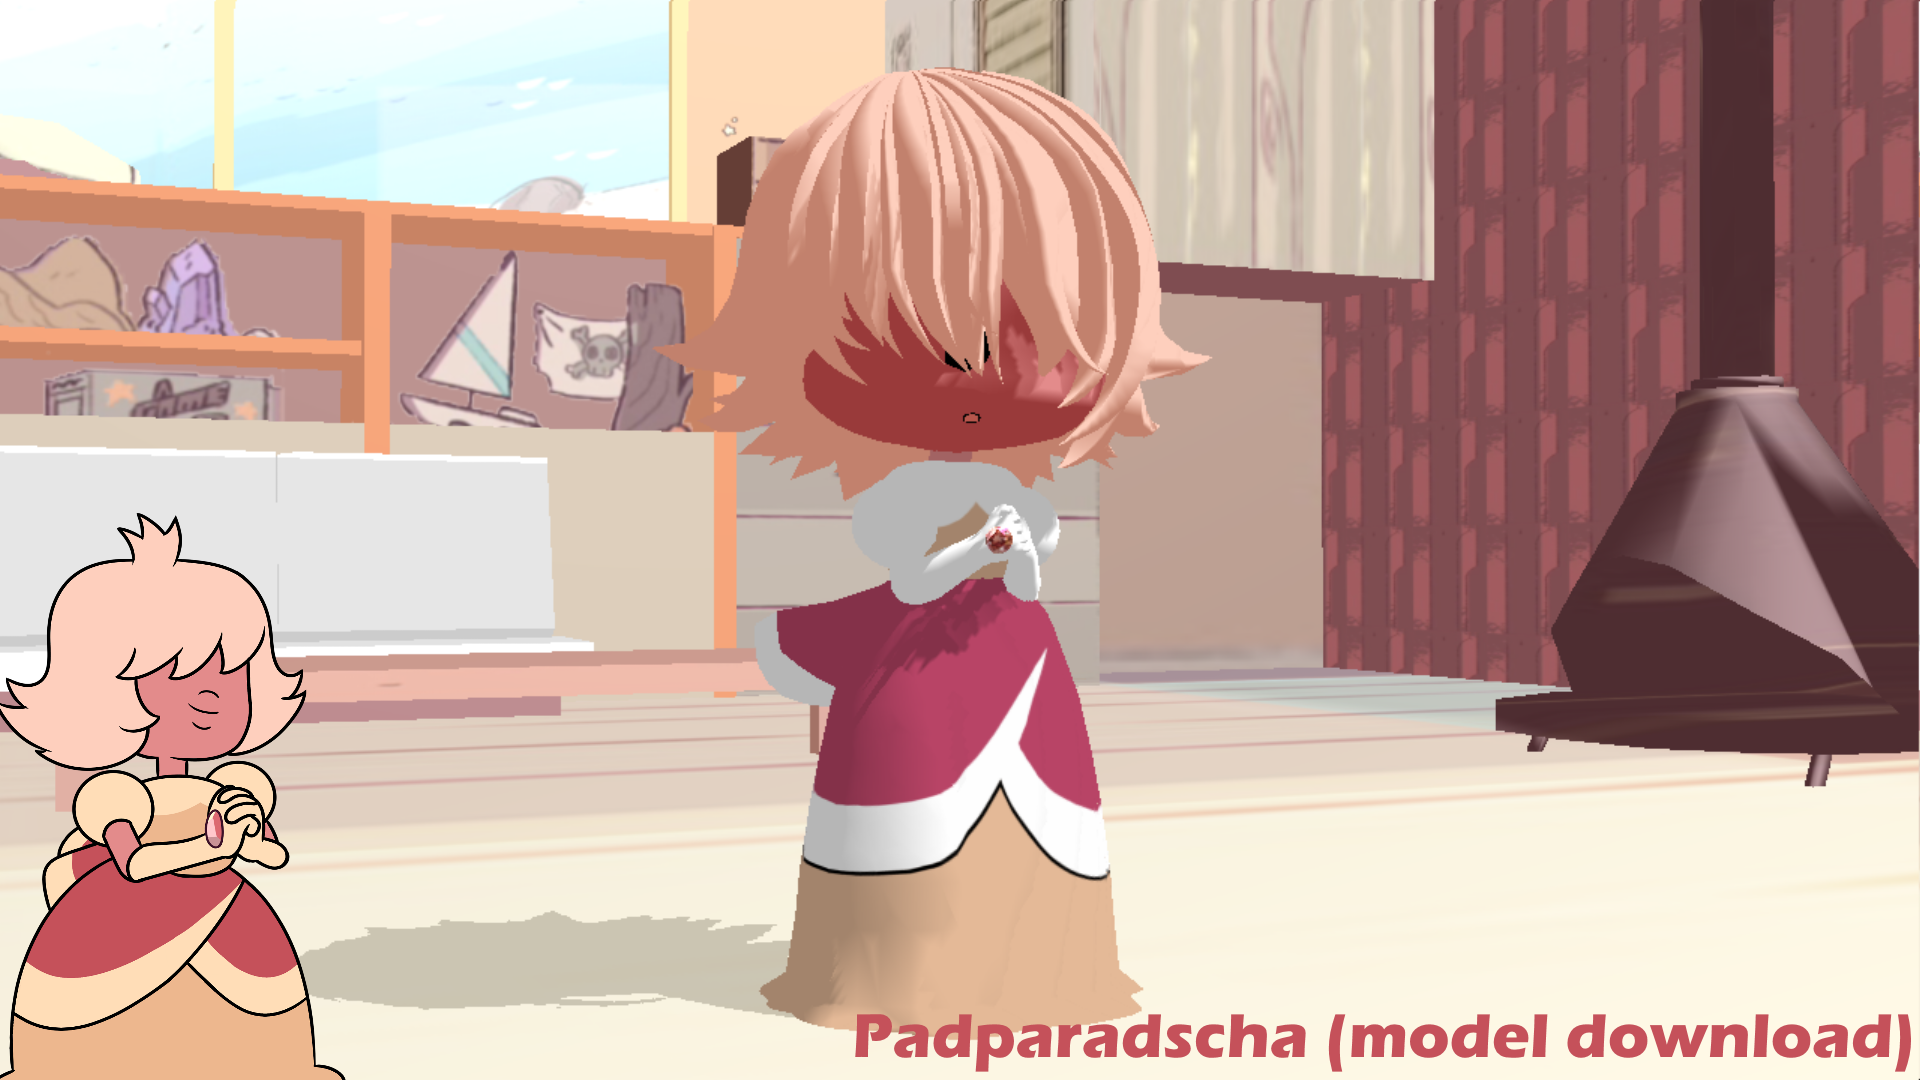 MMD Padparadscha sapphire (Model download) by VOCAD